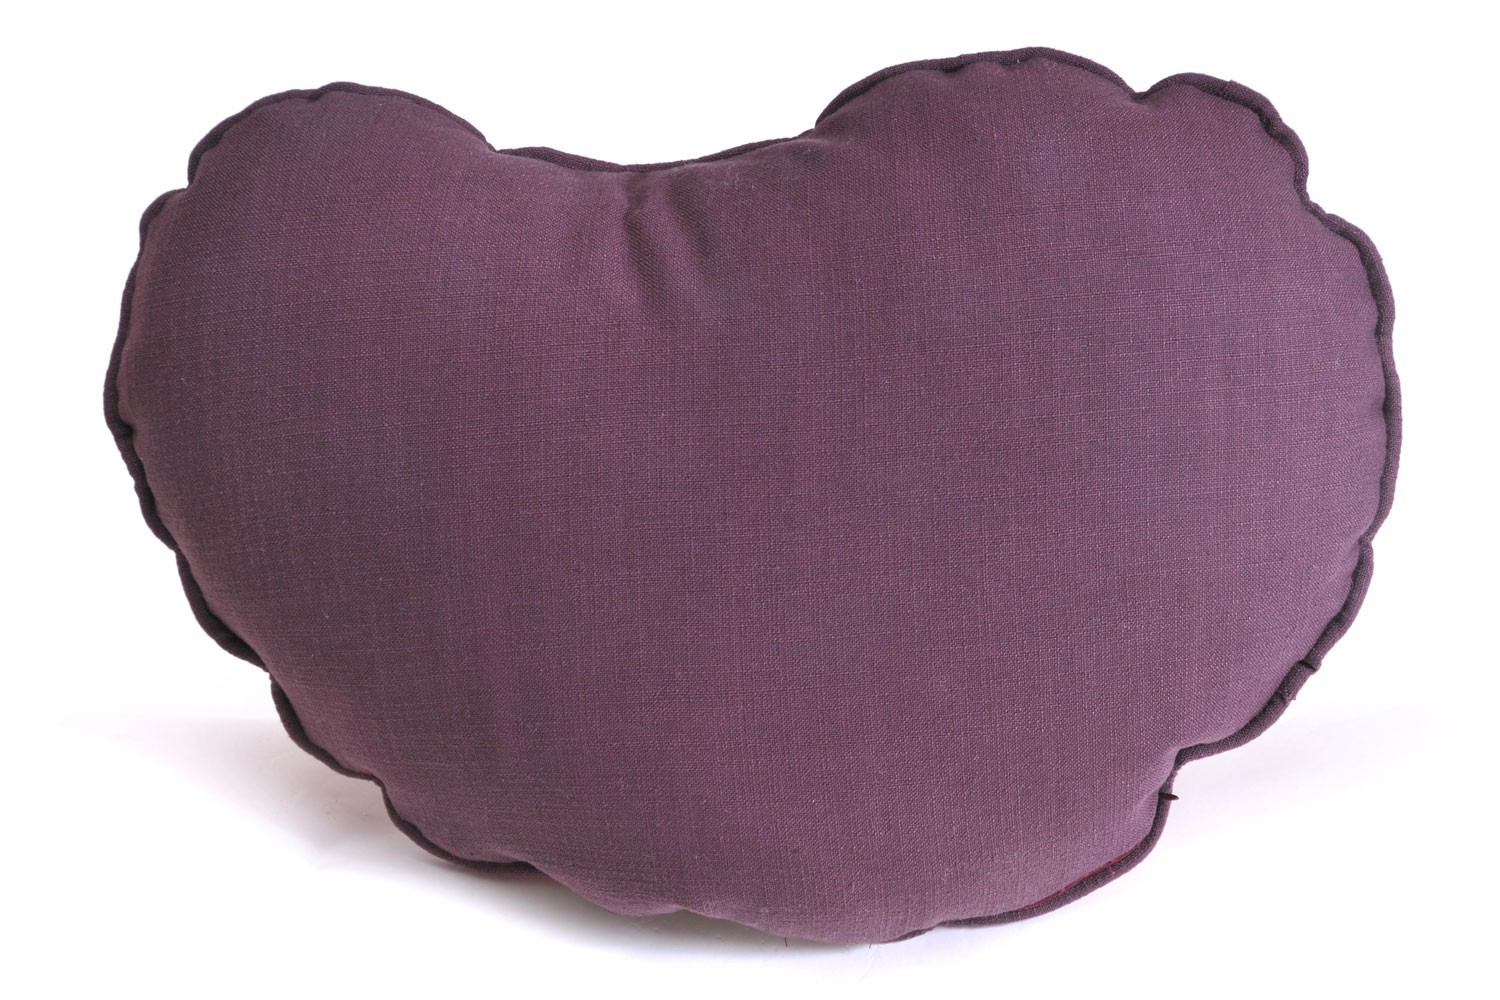 Oryza coussin